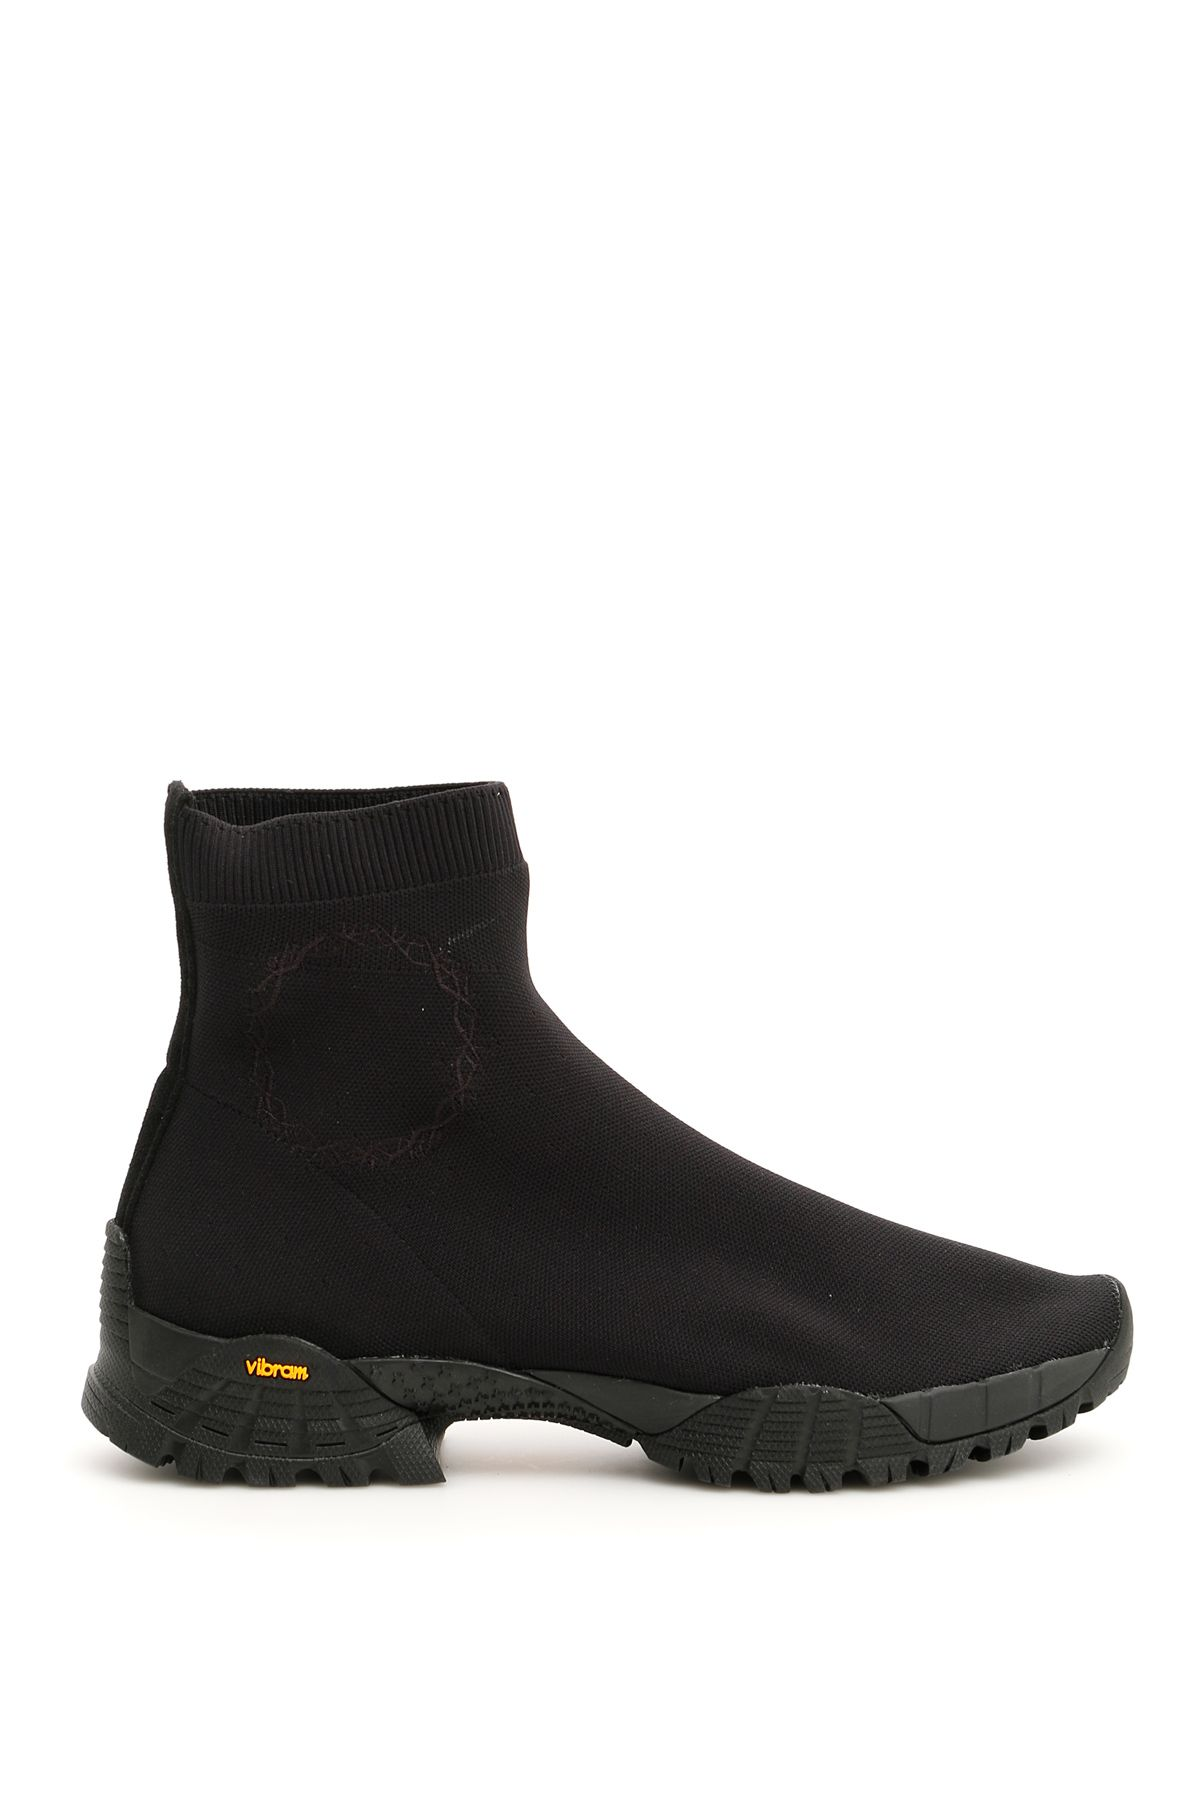 alyx shoes men knit hiking boots